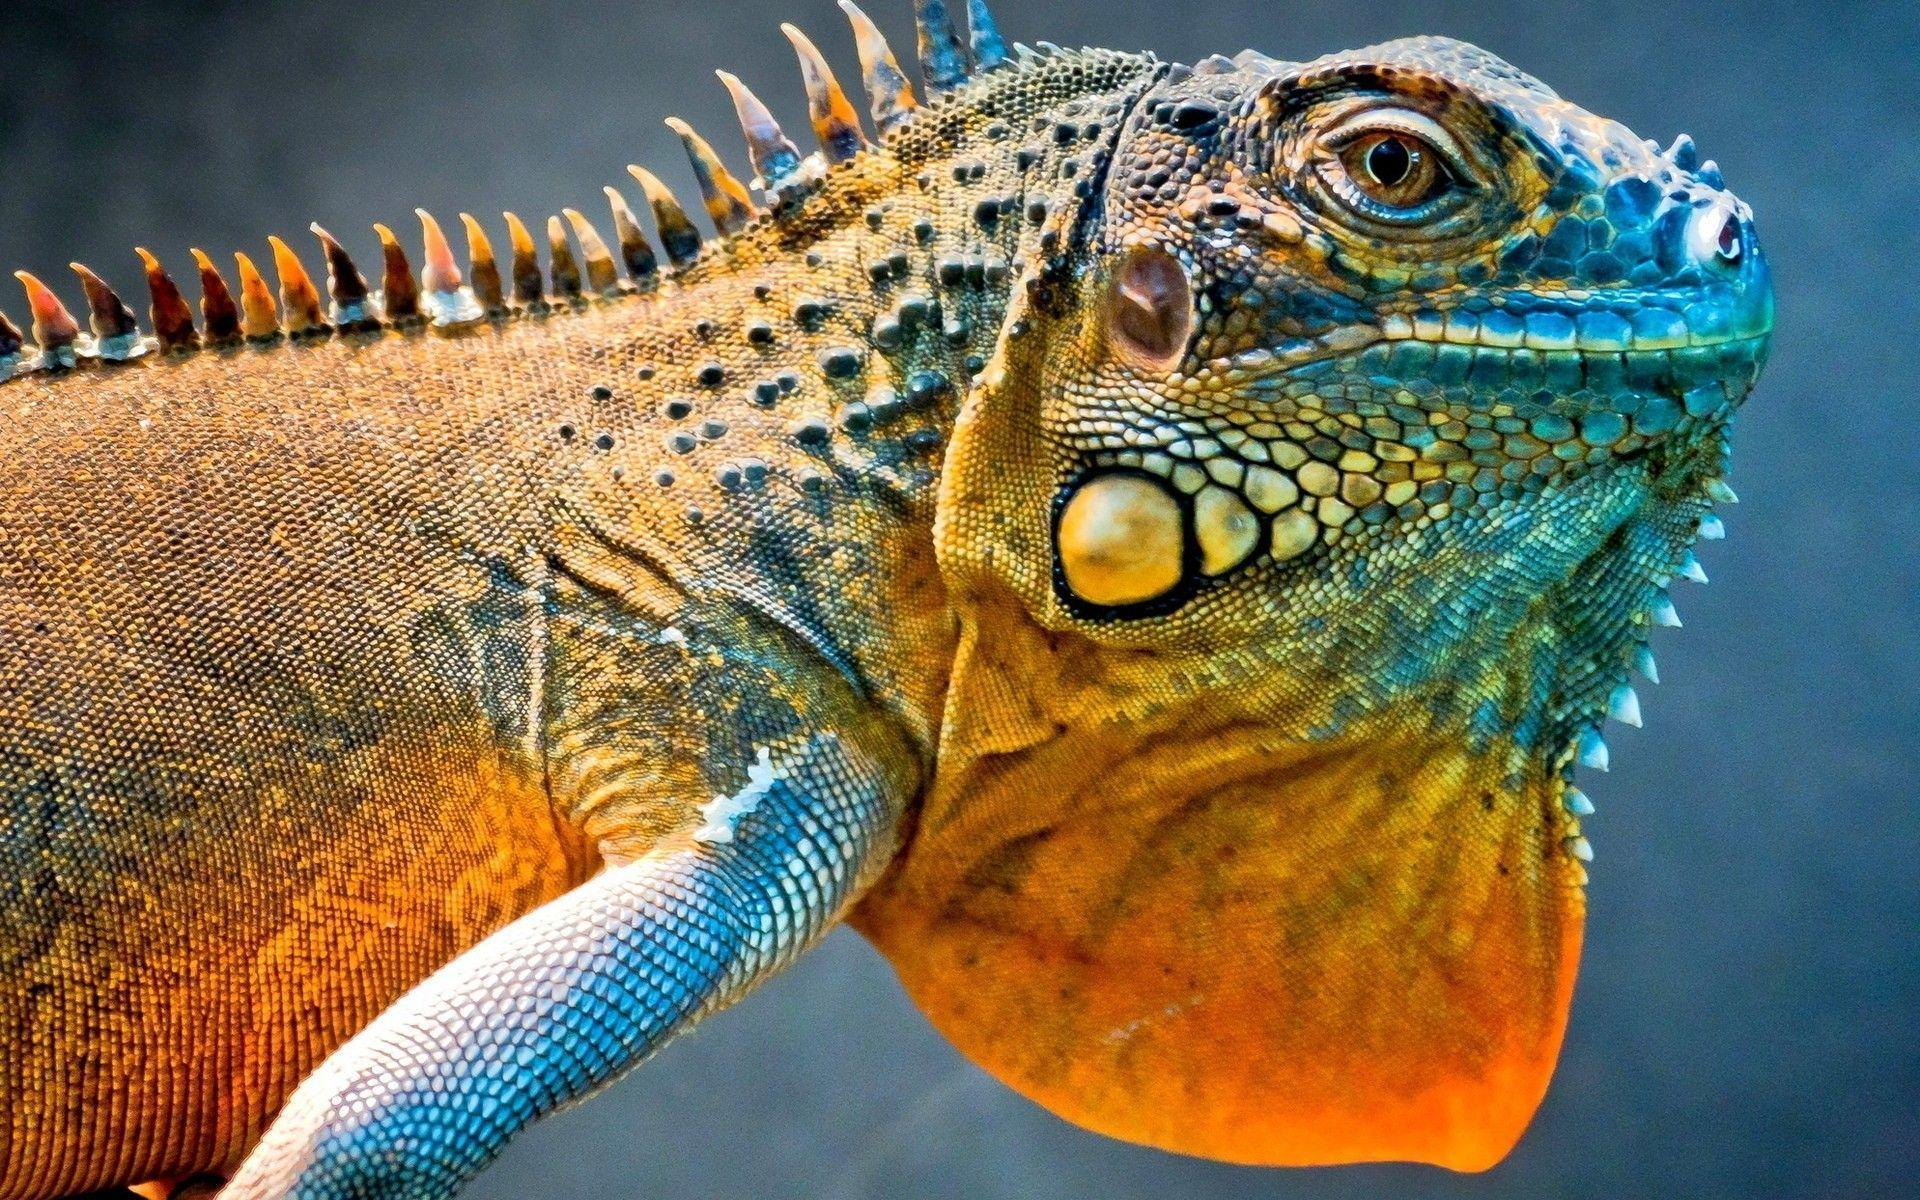 269 Lizard Wallpapers | Lizard Backgrounds Page 3